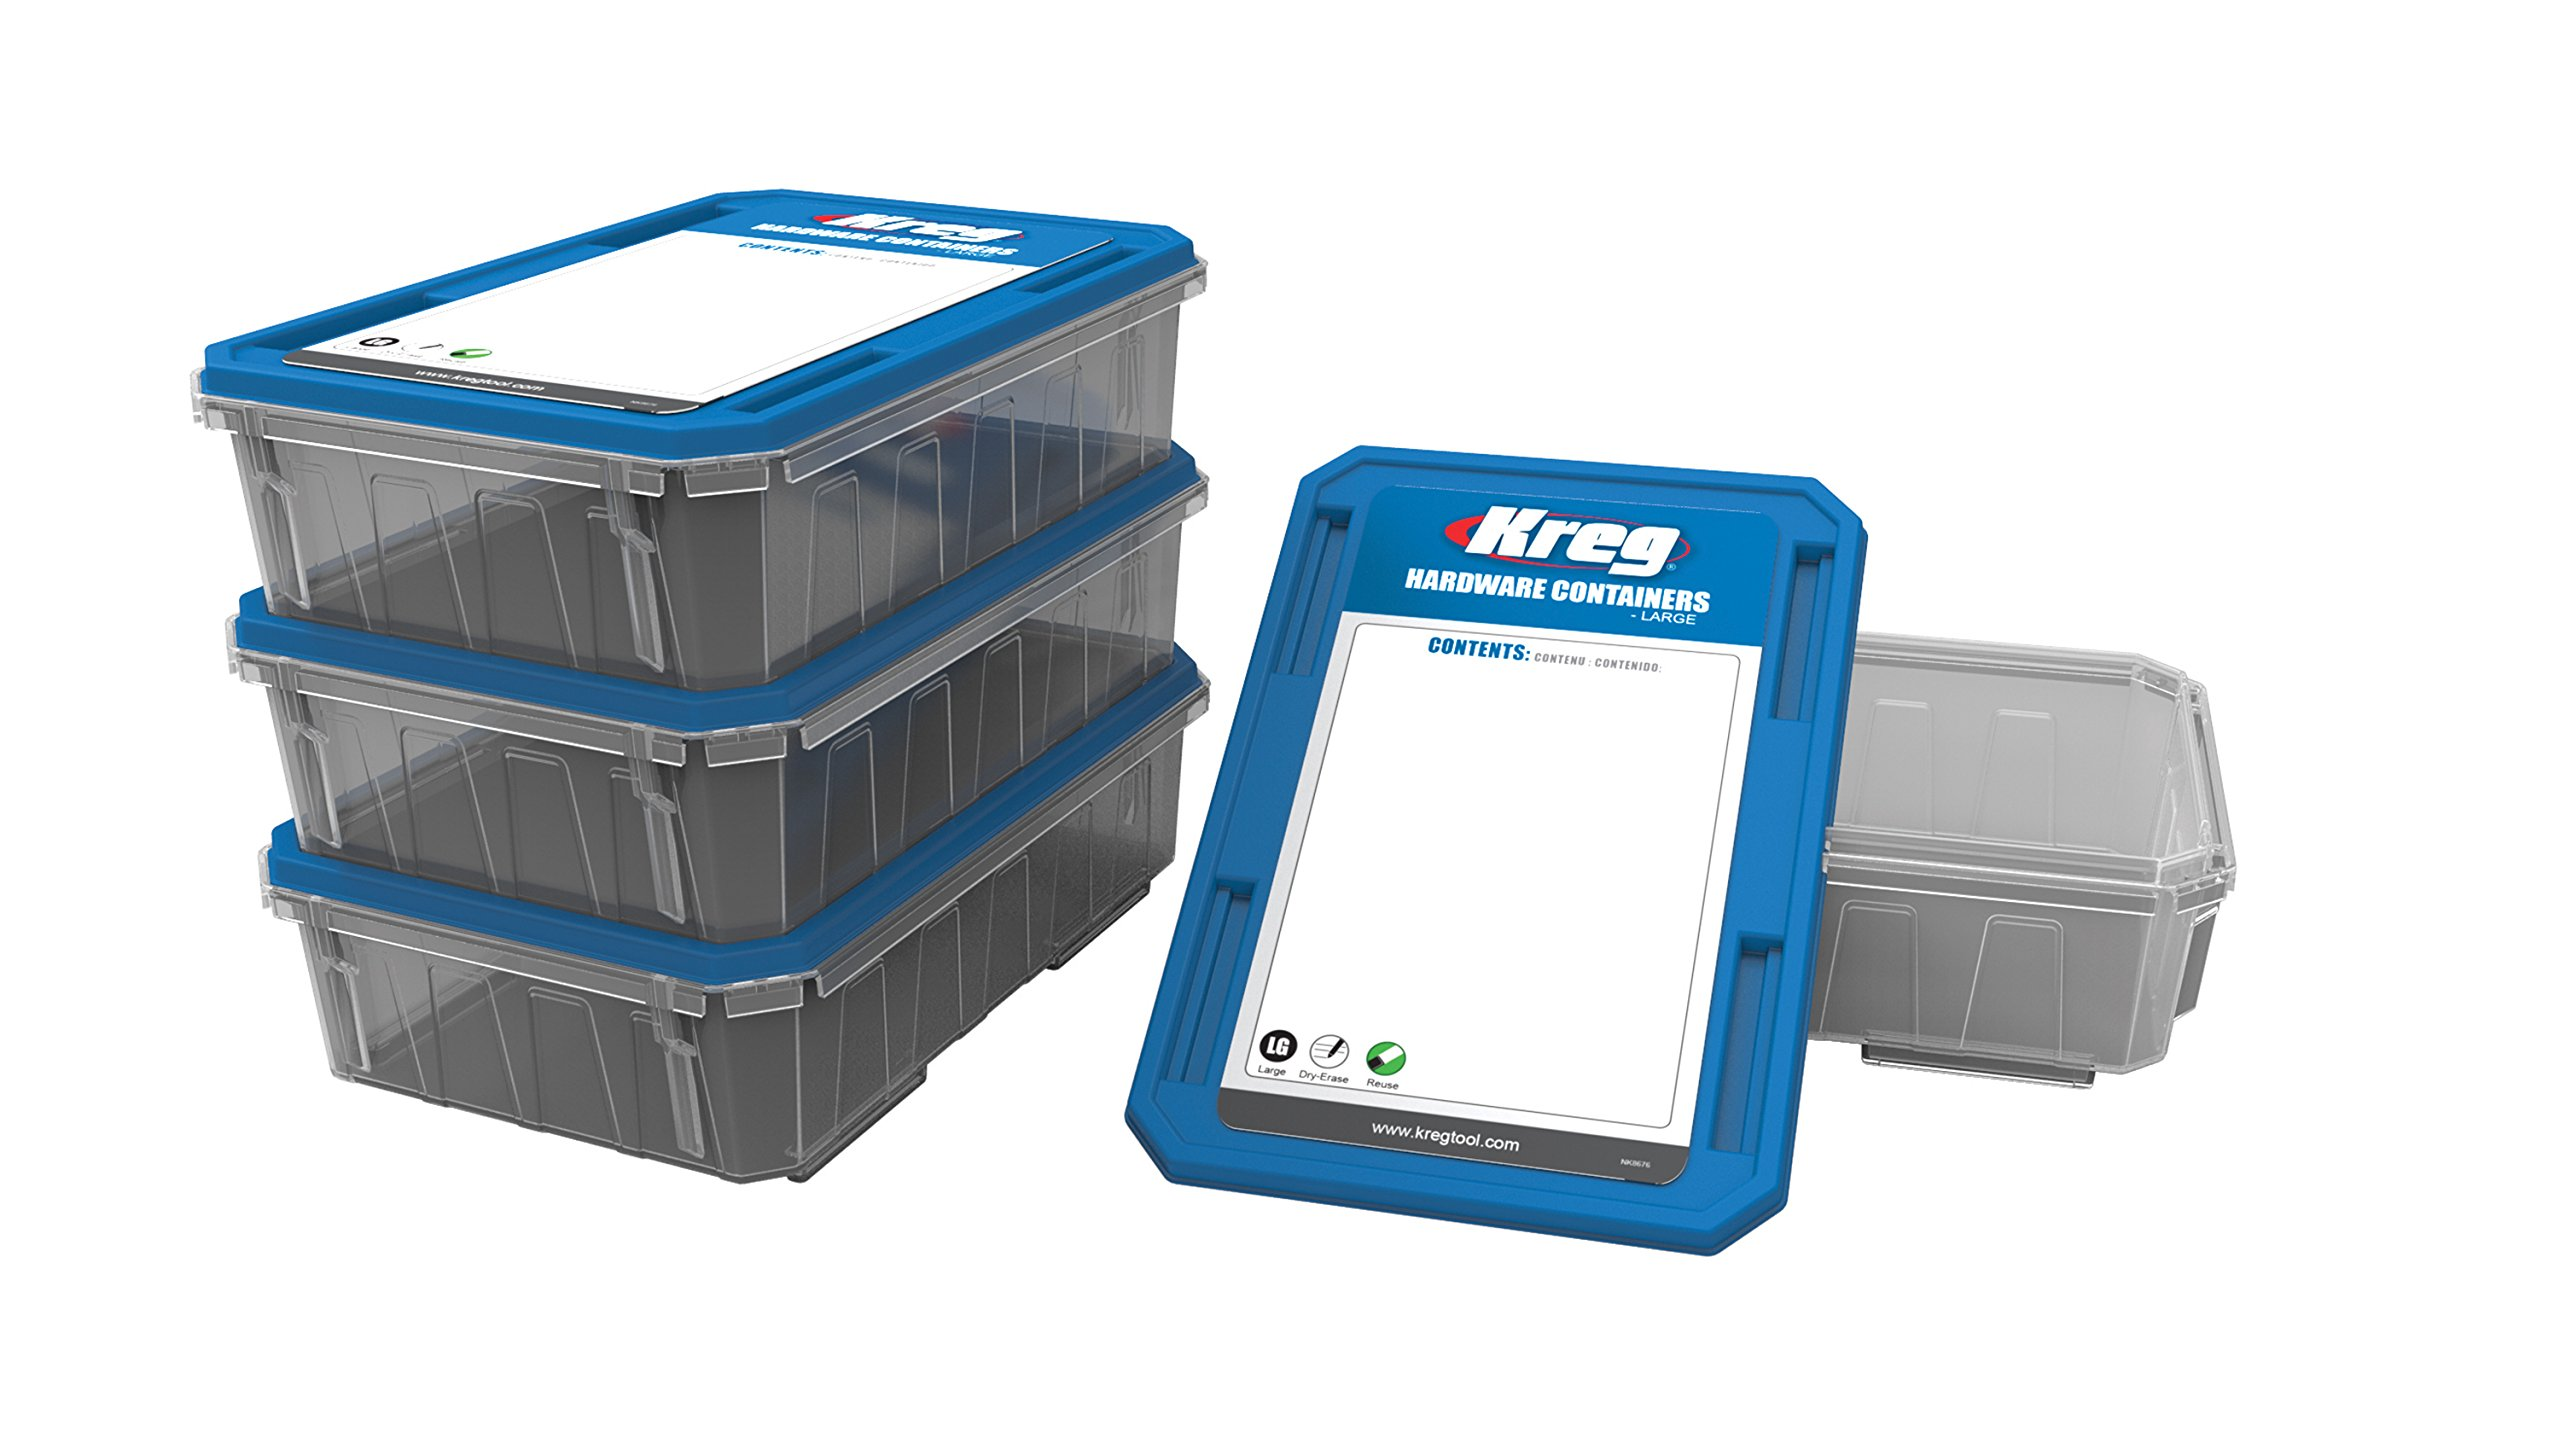 Kreg Tool Company KSS-L Hardware Container, Large by Kreg (Image #1)